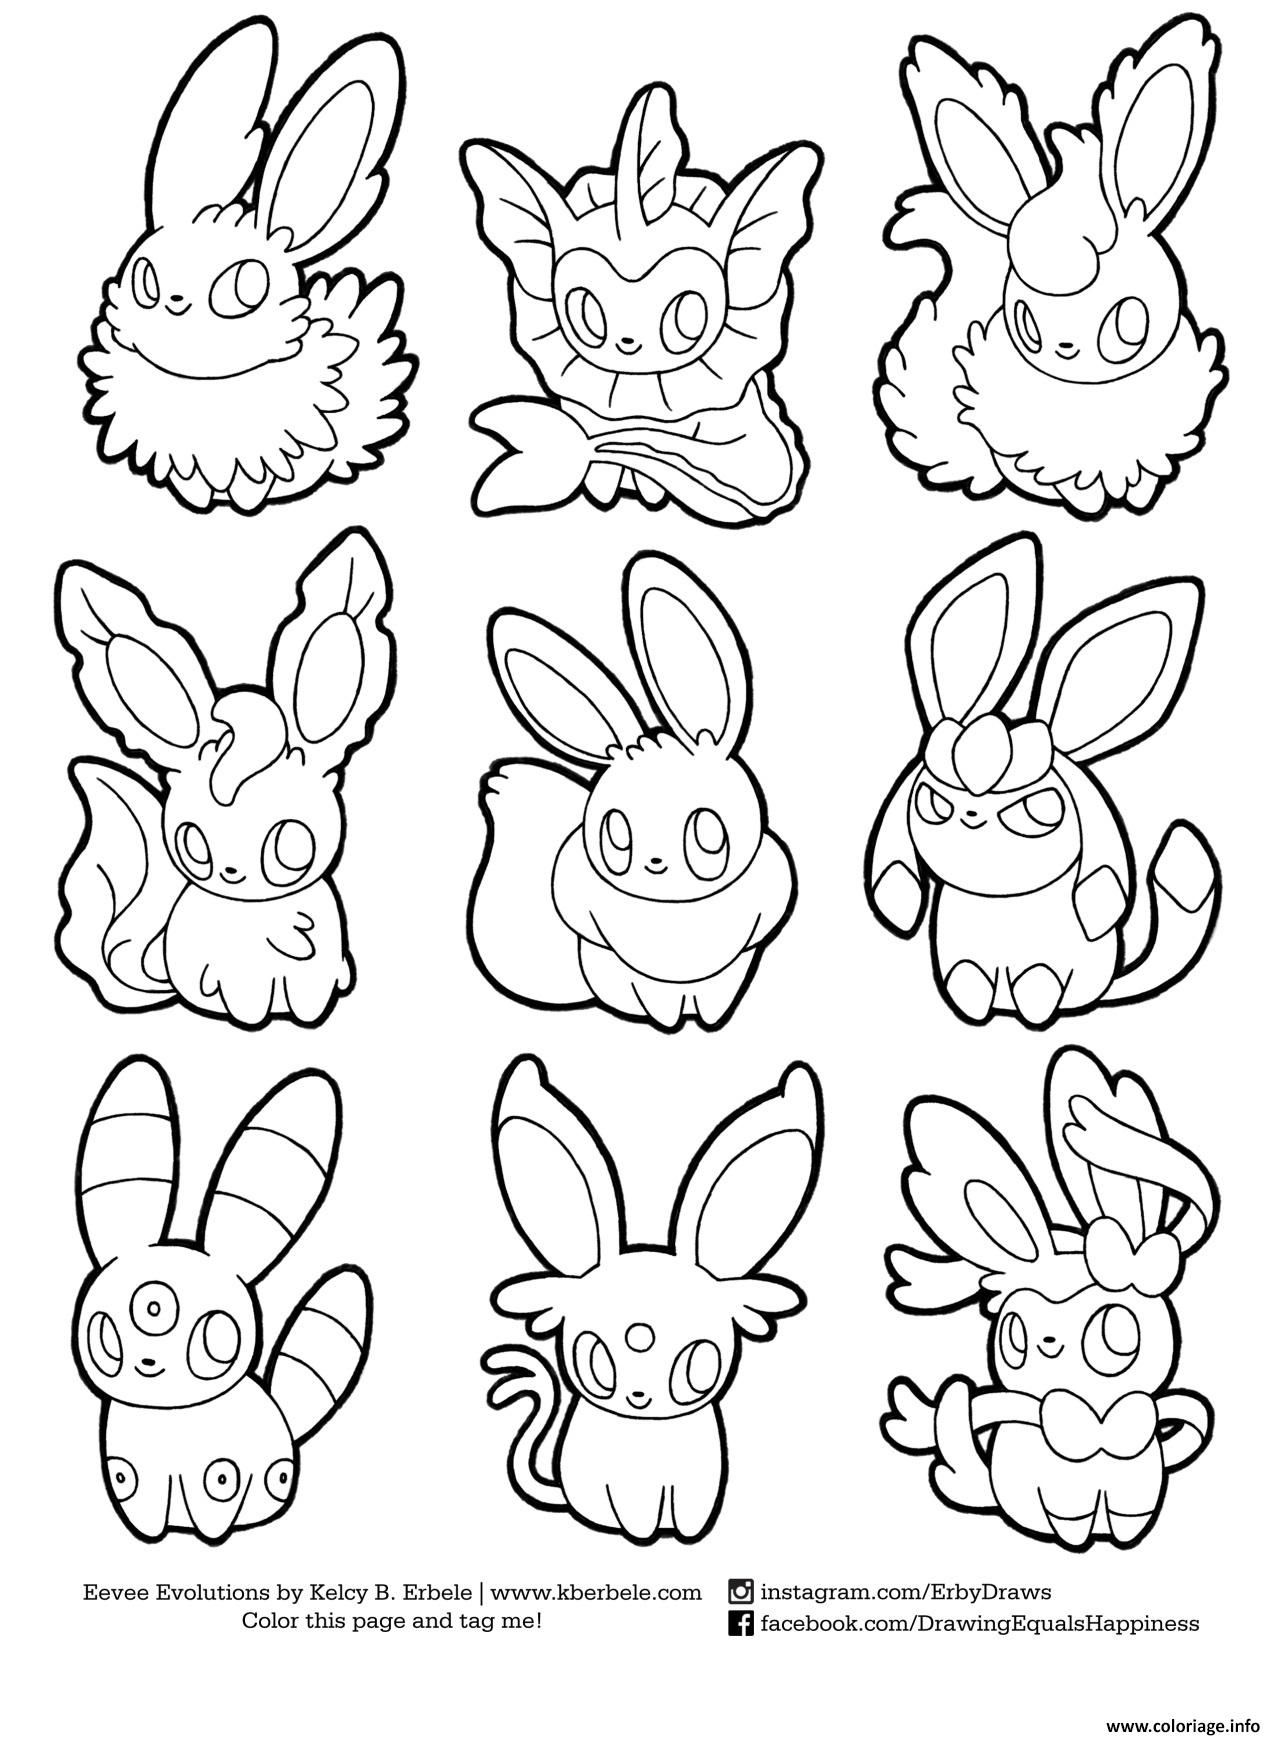 Coloriage pokemon eevee evolutions list   imprimer et coloriage en ligne pour enfants Dessine les coloriages Pokemon Eevee Evolutions List de dessin